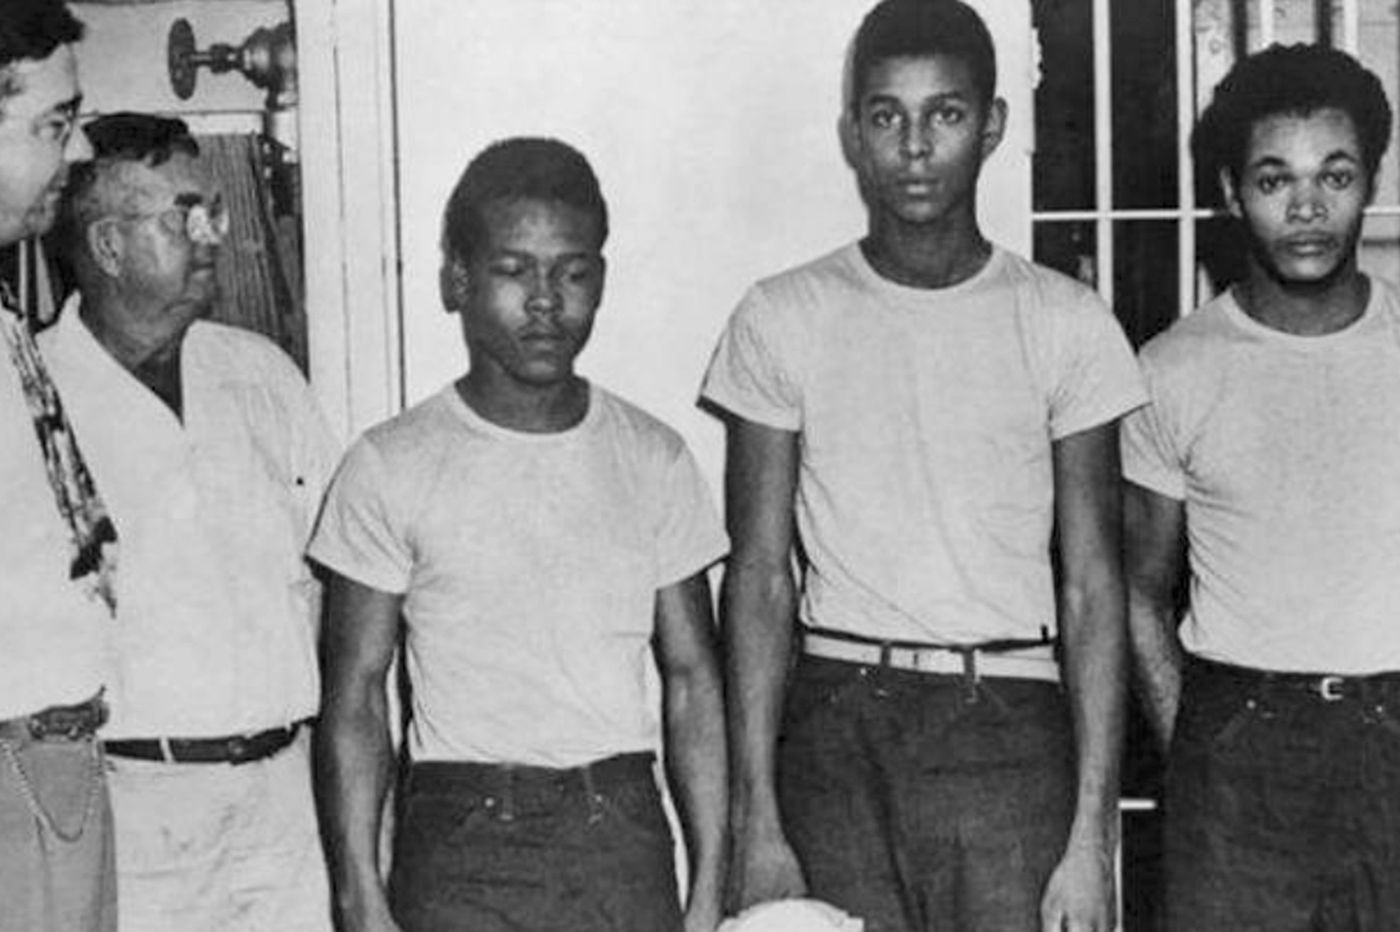 Florida pardons 4 black men accused of 1949 rape